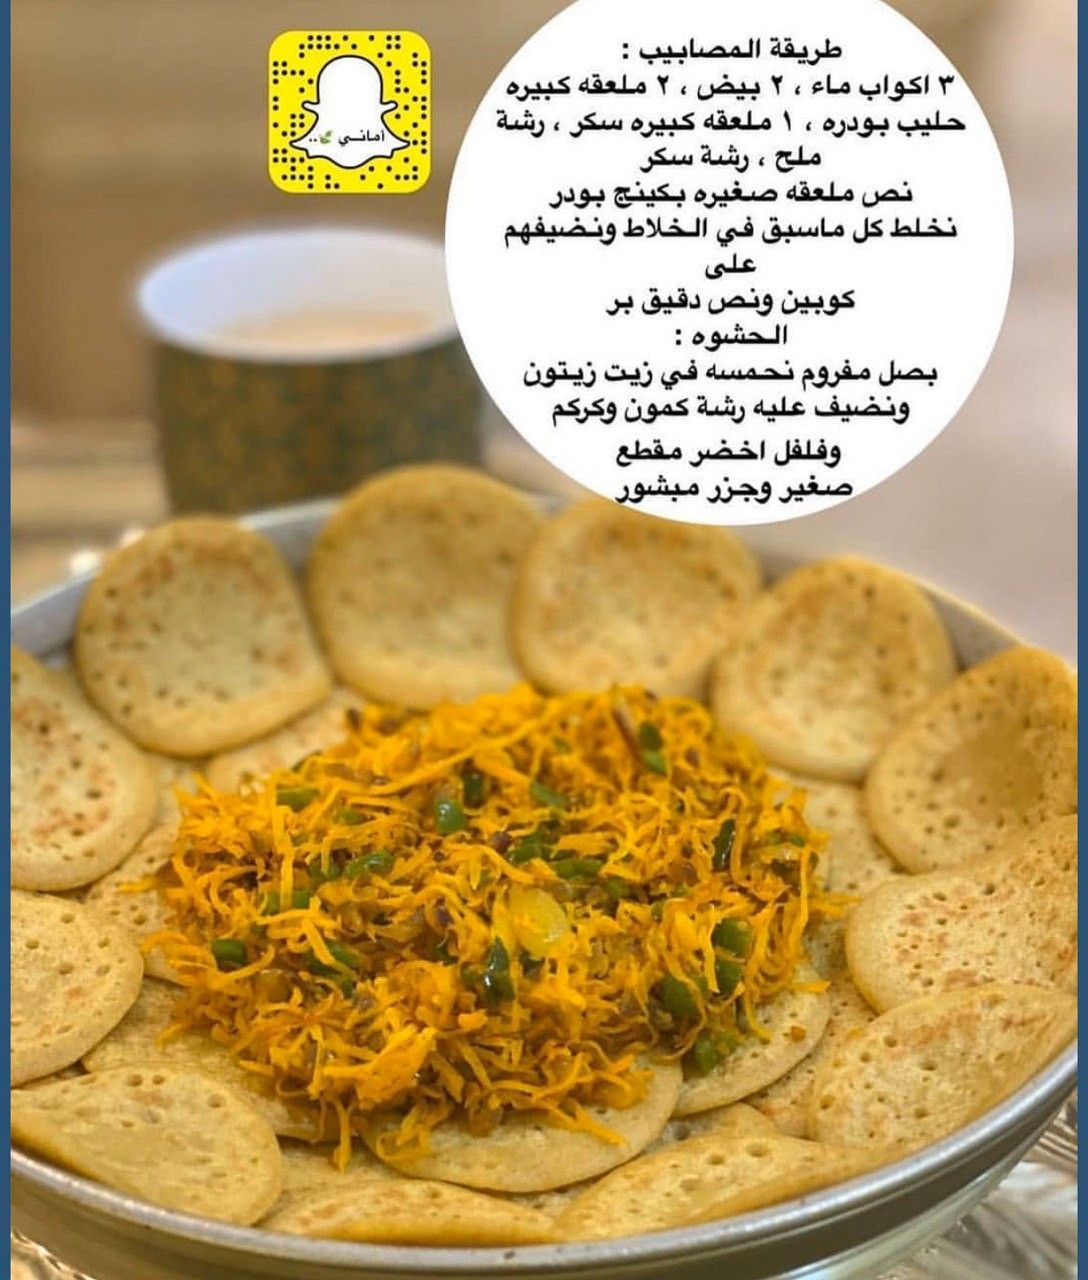 Pin by اfoz albogami on ضيااااافه in 2020 | Cooking, Food, Arabic food